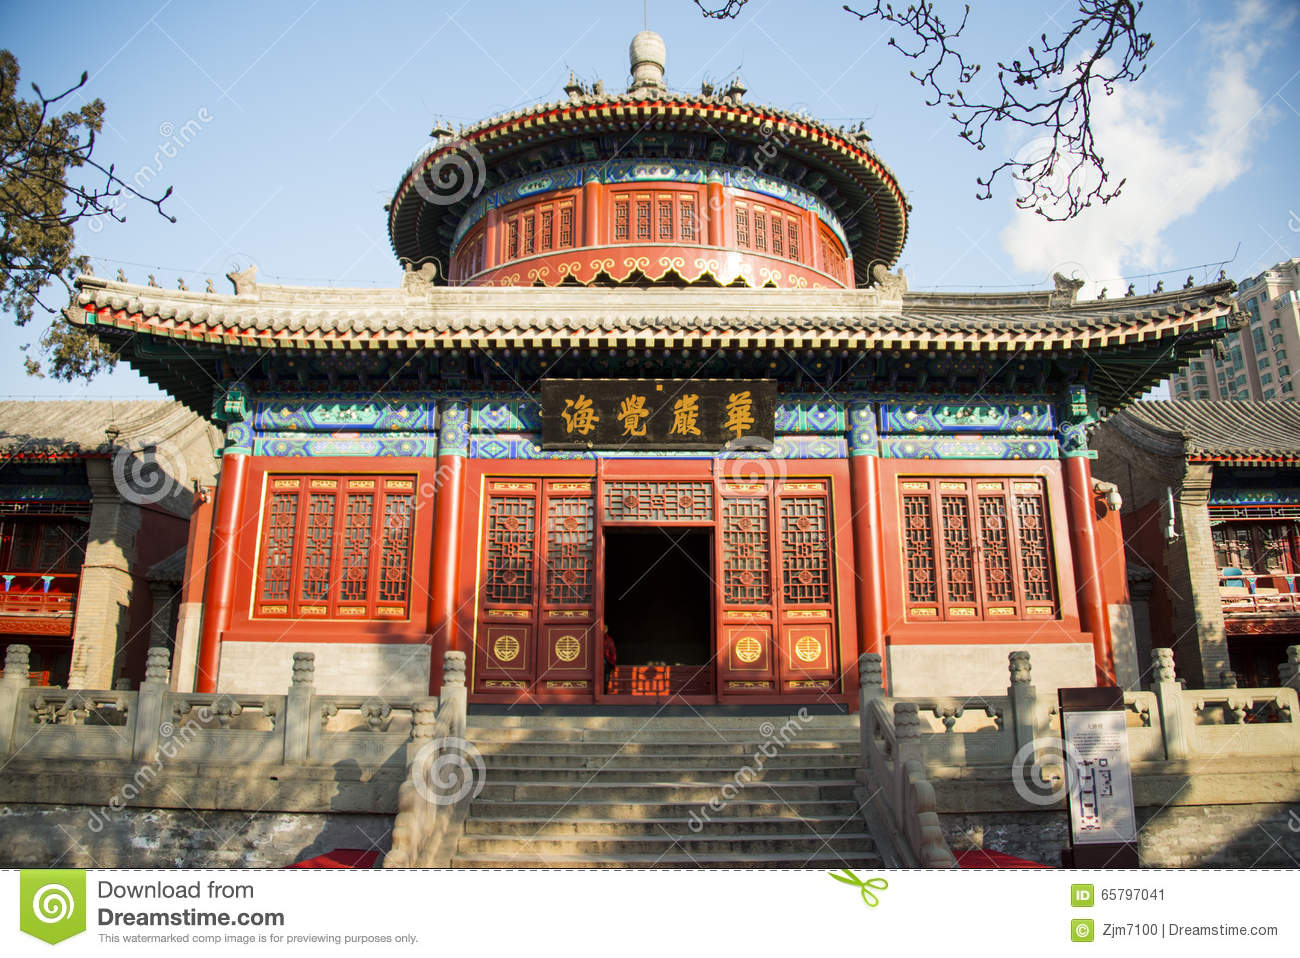 Asia Chinese, Beijing, Dazhongsi Ancient Bell Museum,Classical architecture